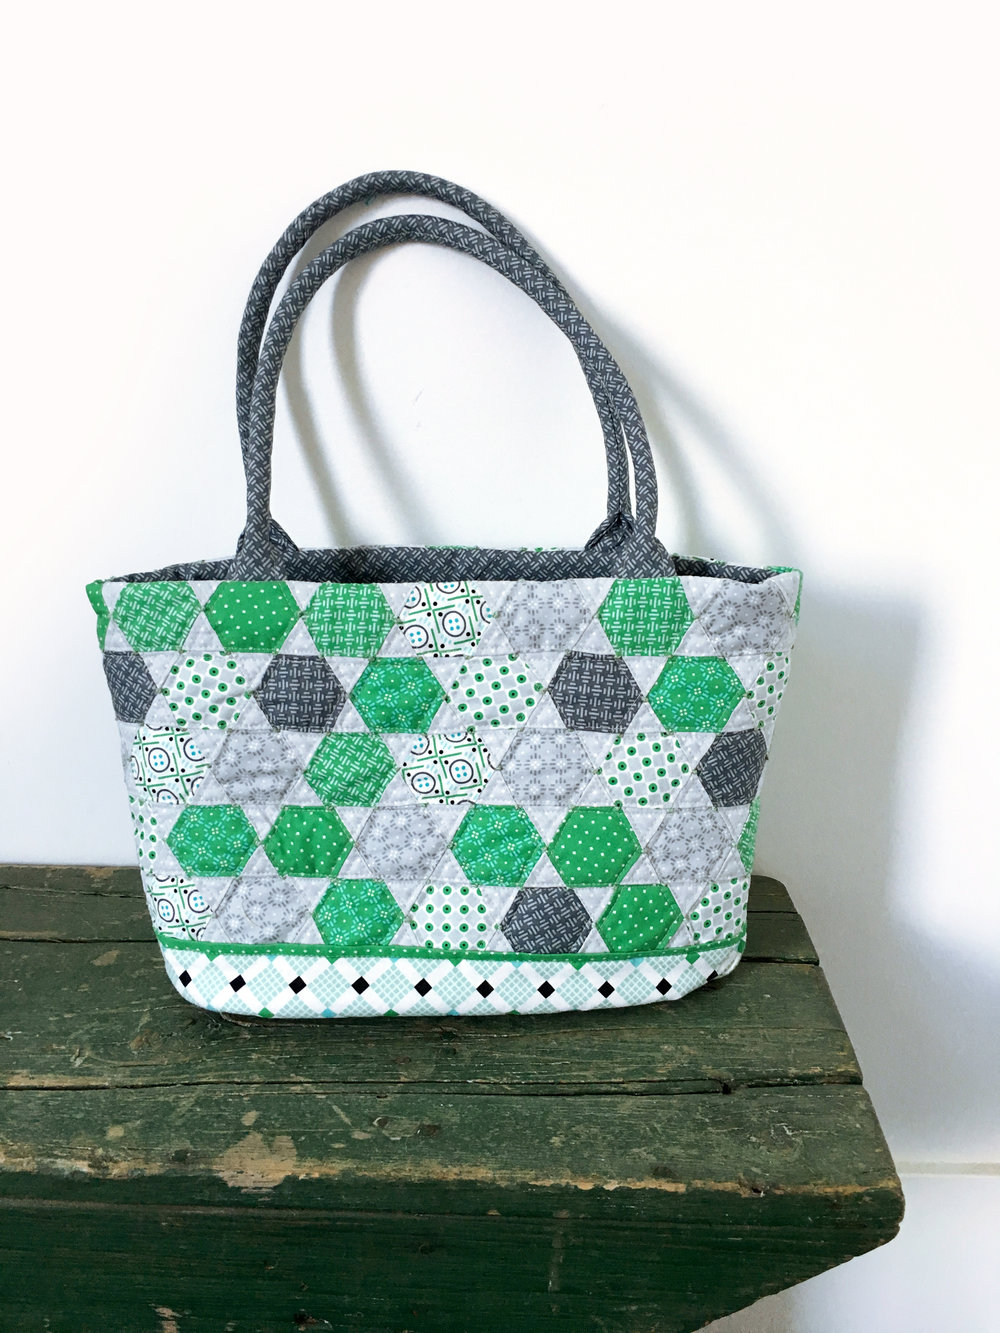 bag-UPPERCASE-Vol-2-Dots-Dashes-Diamonds.jpg